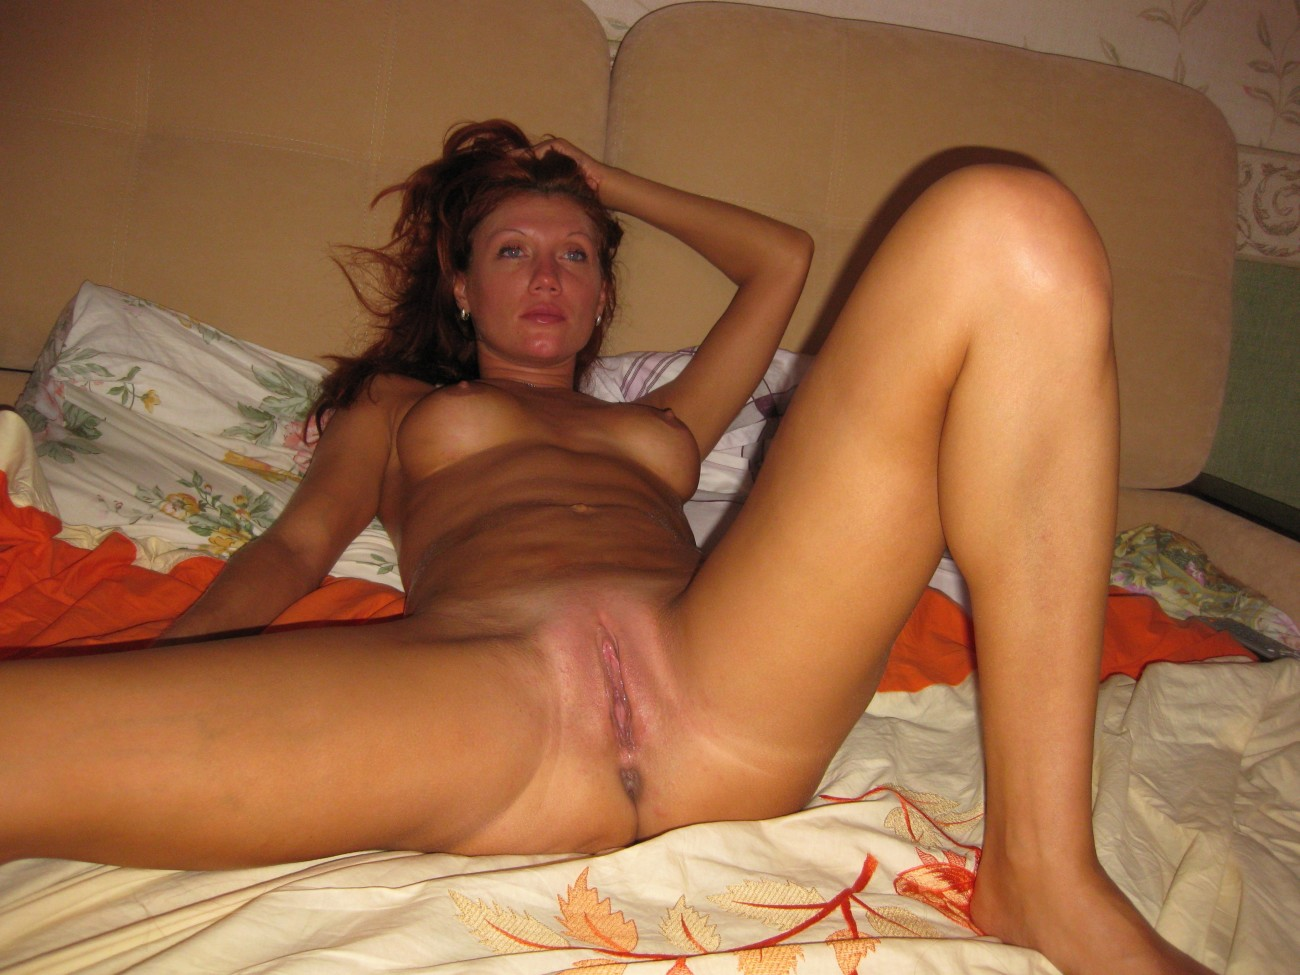 real young amateur milf nude